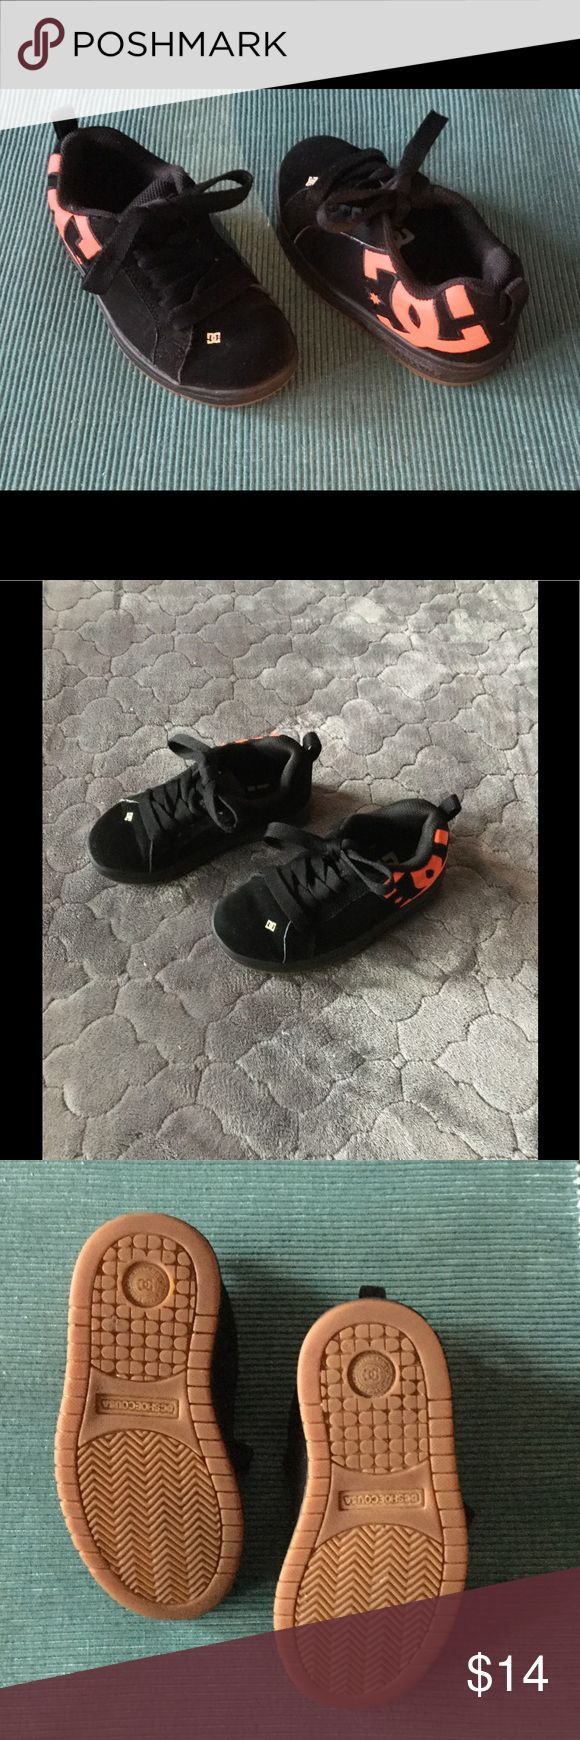 Toddler's DC Skate Shoes Worn but still in good condition - All black suede with orange accent and black laces DC Shoes Sneakers